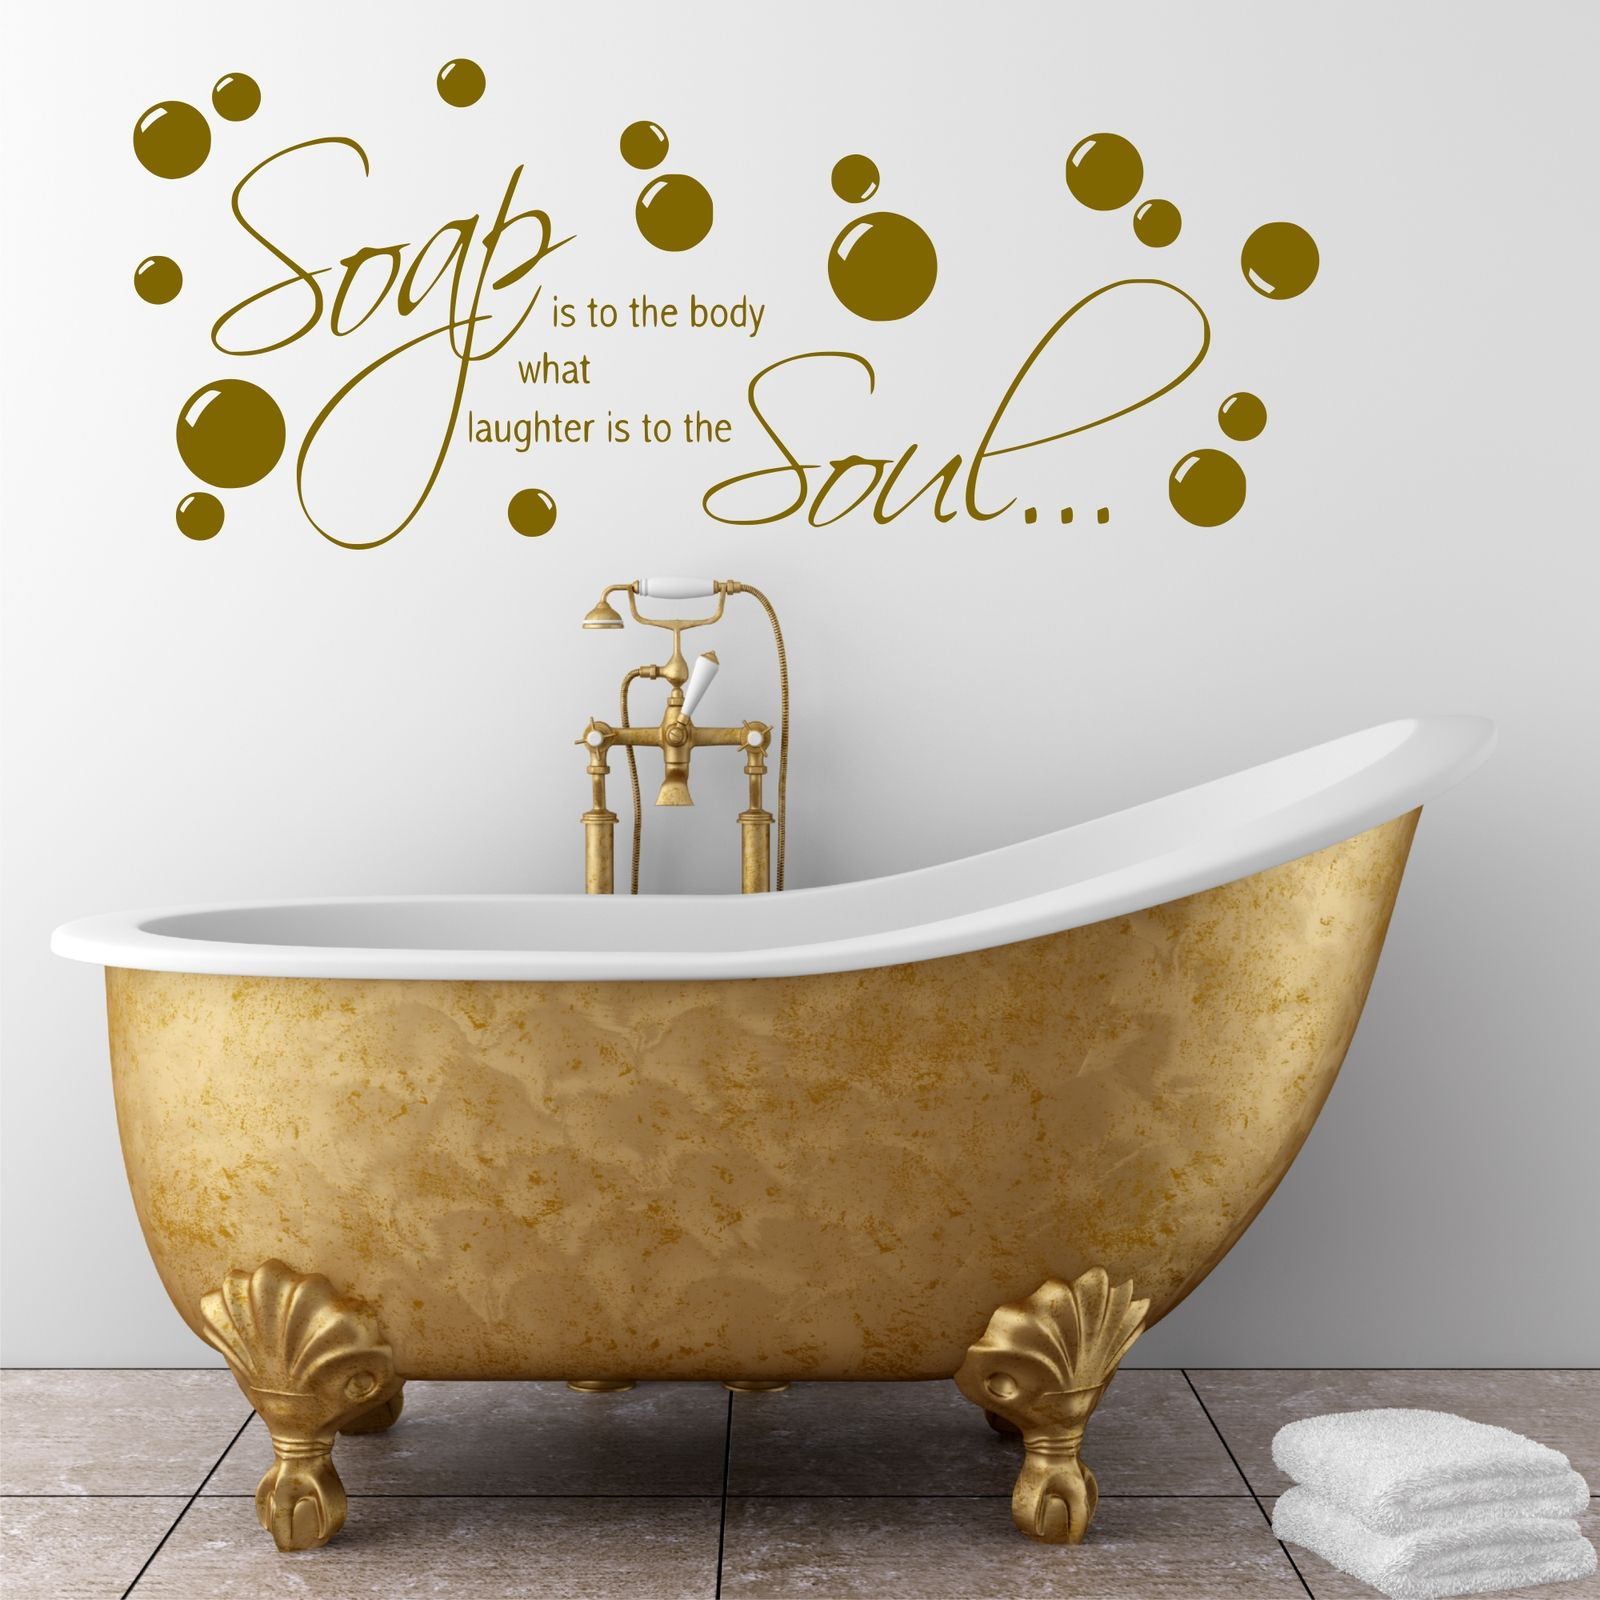 Bathroom Wall Quote Soap Body Wall Sticker Decal Transfer Mural